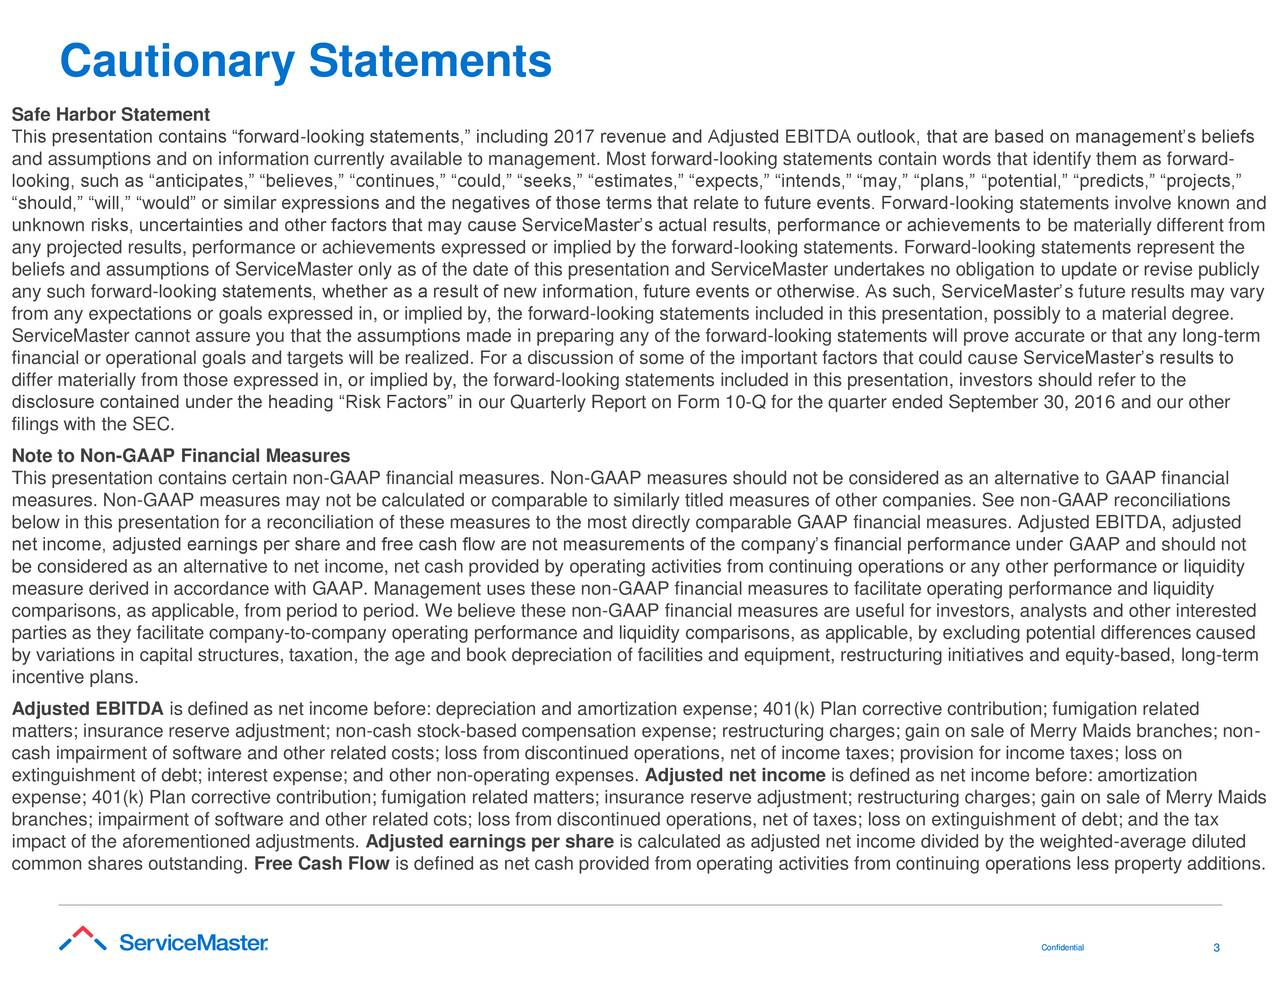 Safe Harbor Statement This presentation contains forward-looking statements, including 2017 revenue and Adjusted EBITDA outlook, that are based on managements beliefs and assumptions and on information currently available to management. Most forward-looking statements contain words that identify them as forward- looking, such as anticipates, believes, continues, could, seeks, estimates, expects, intends, may, plans, potential, predicts, projects, should, will, would or similar expressions and the negatives of those terms that relate to future events. Forward-looking statements involve known and unknown risks, uncertainties and other factors that may cause ServiceMasters actual results, performance or achievements to be materially different from any projected results, performance or achievements expressed or implied by the forward-looking statements. Forward-looking statements represent the beliefs and assumptions of ServiceMaster only as of the date of this presentation and ServiceMaster undertakes no obligation to update or revise publicly any such forward-looking statements, whether as a result of new information, future events or otherwise. As such, ServiceMasters future results may vary from any expectations or goals expressed in, or implied by, the forward-looking statements included in this presentation, possibly to a material degree. ServiceMaster cannot assure you that the assumptions made in preparing any of the forward-looking statements will prove accurate or that any long-term financial or operational goals and targets will be realized. For a discussion of some of the important factors that could cause ServiceMasters results to differ materially from those expressed in, or implied by, the forward-looking statements included in this presentation, investors should refer to the disclosure contained under the heading Risk Factors in our Quarterly Report on Form 10-Q for the quarter ended September 30, 2016 and our other filings with the SEC. Note to Non-GAAP